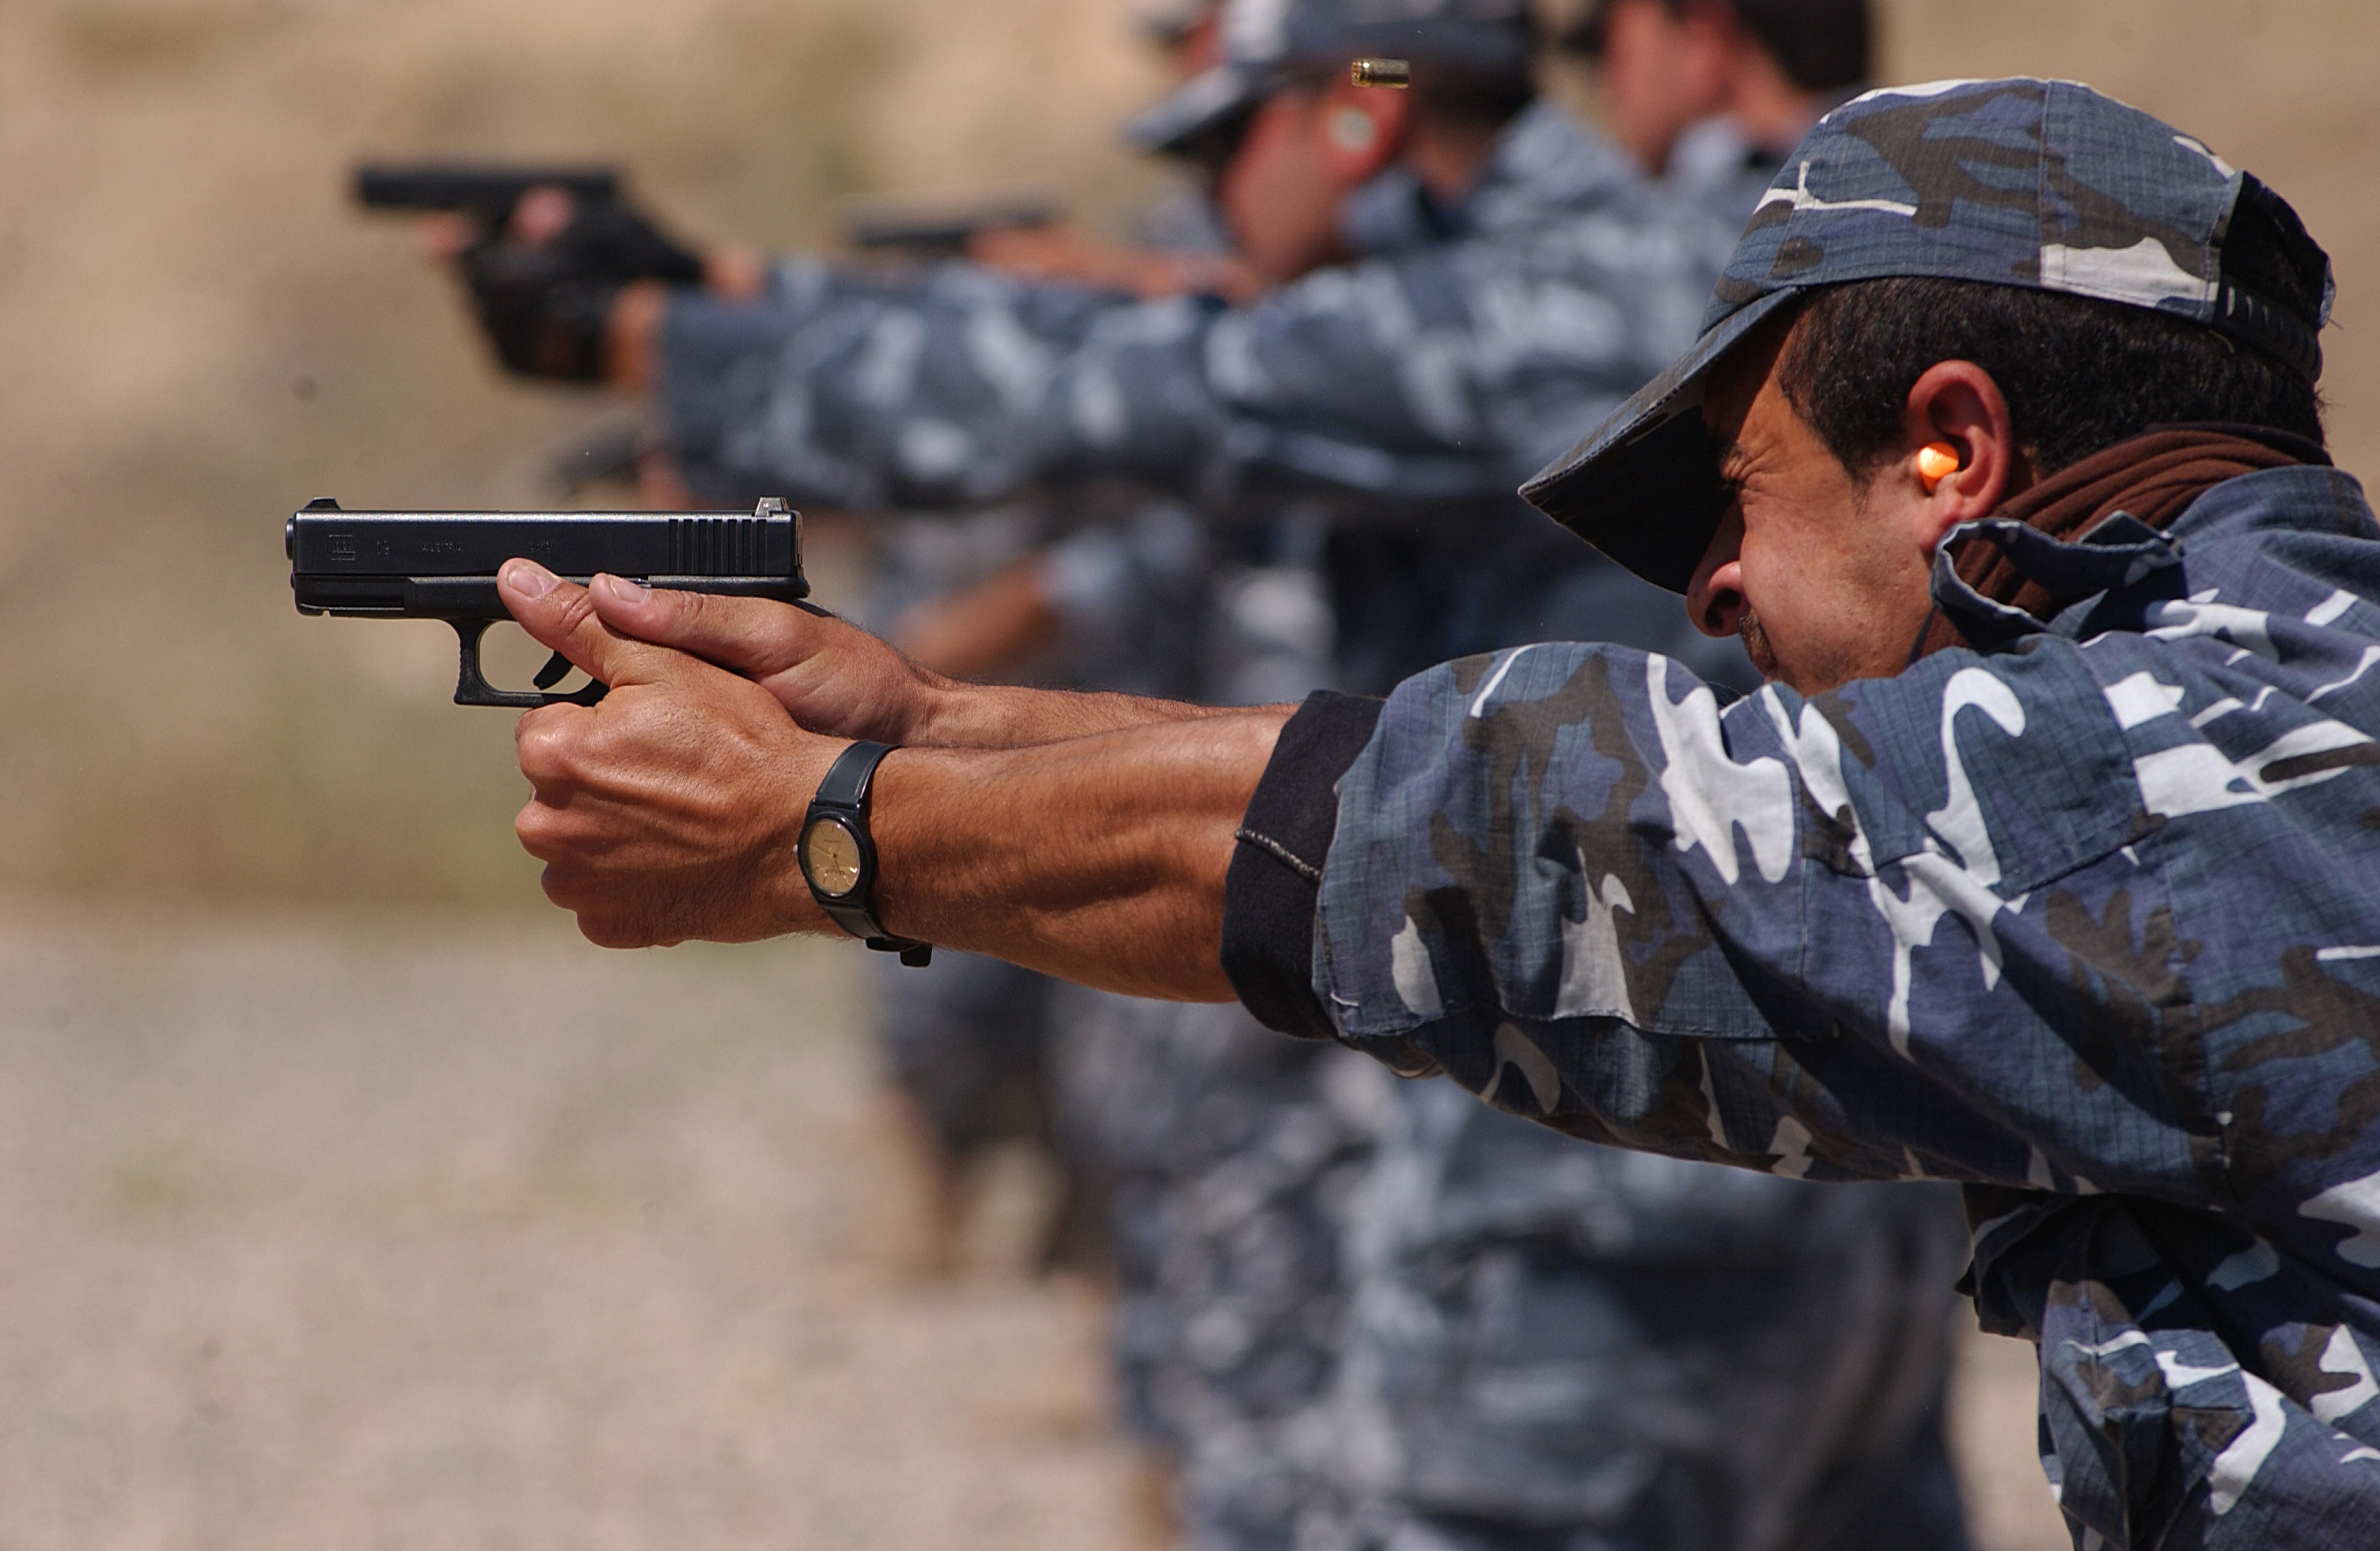 Bandoleered Bookworm: What agencies have adopted the P95?